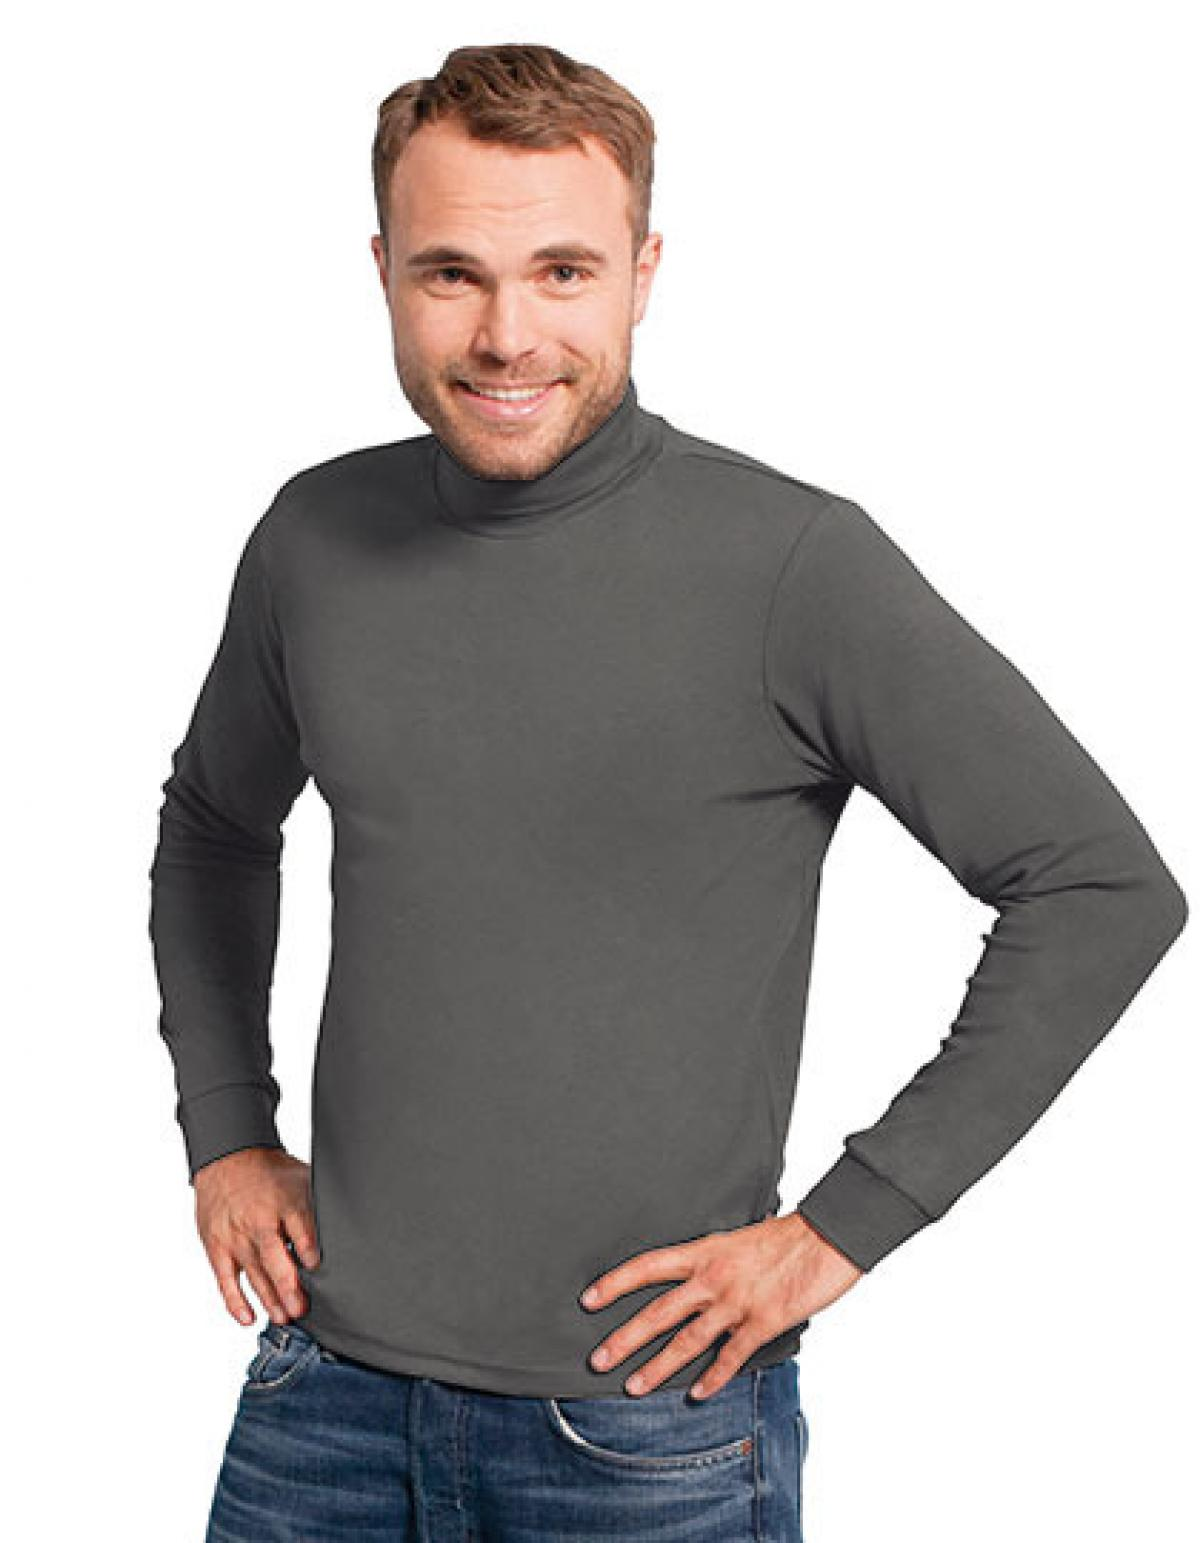 men s turtleneck t longsleeve herren t shirt rexlander s. Black Bedroom Furniture Sets. Home Design Ideas